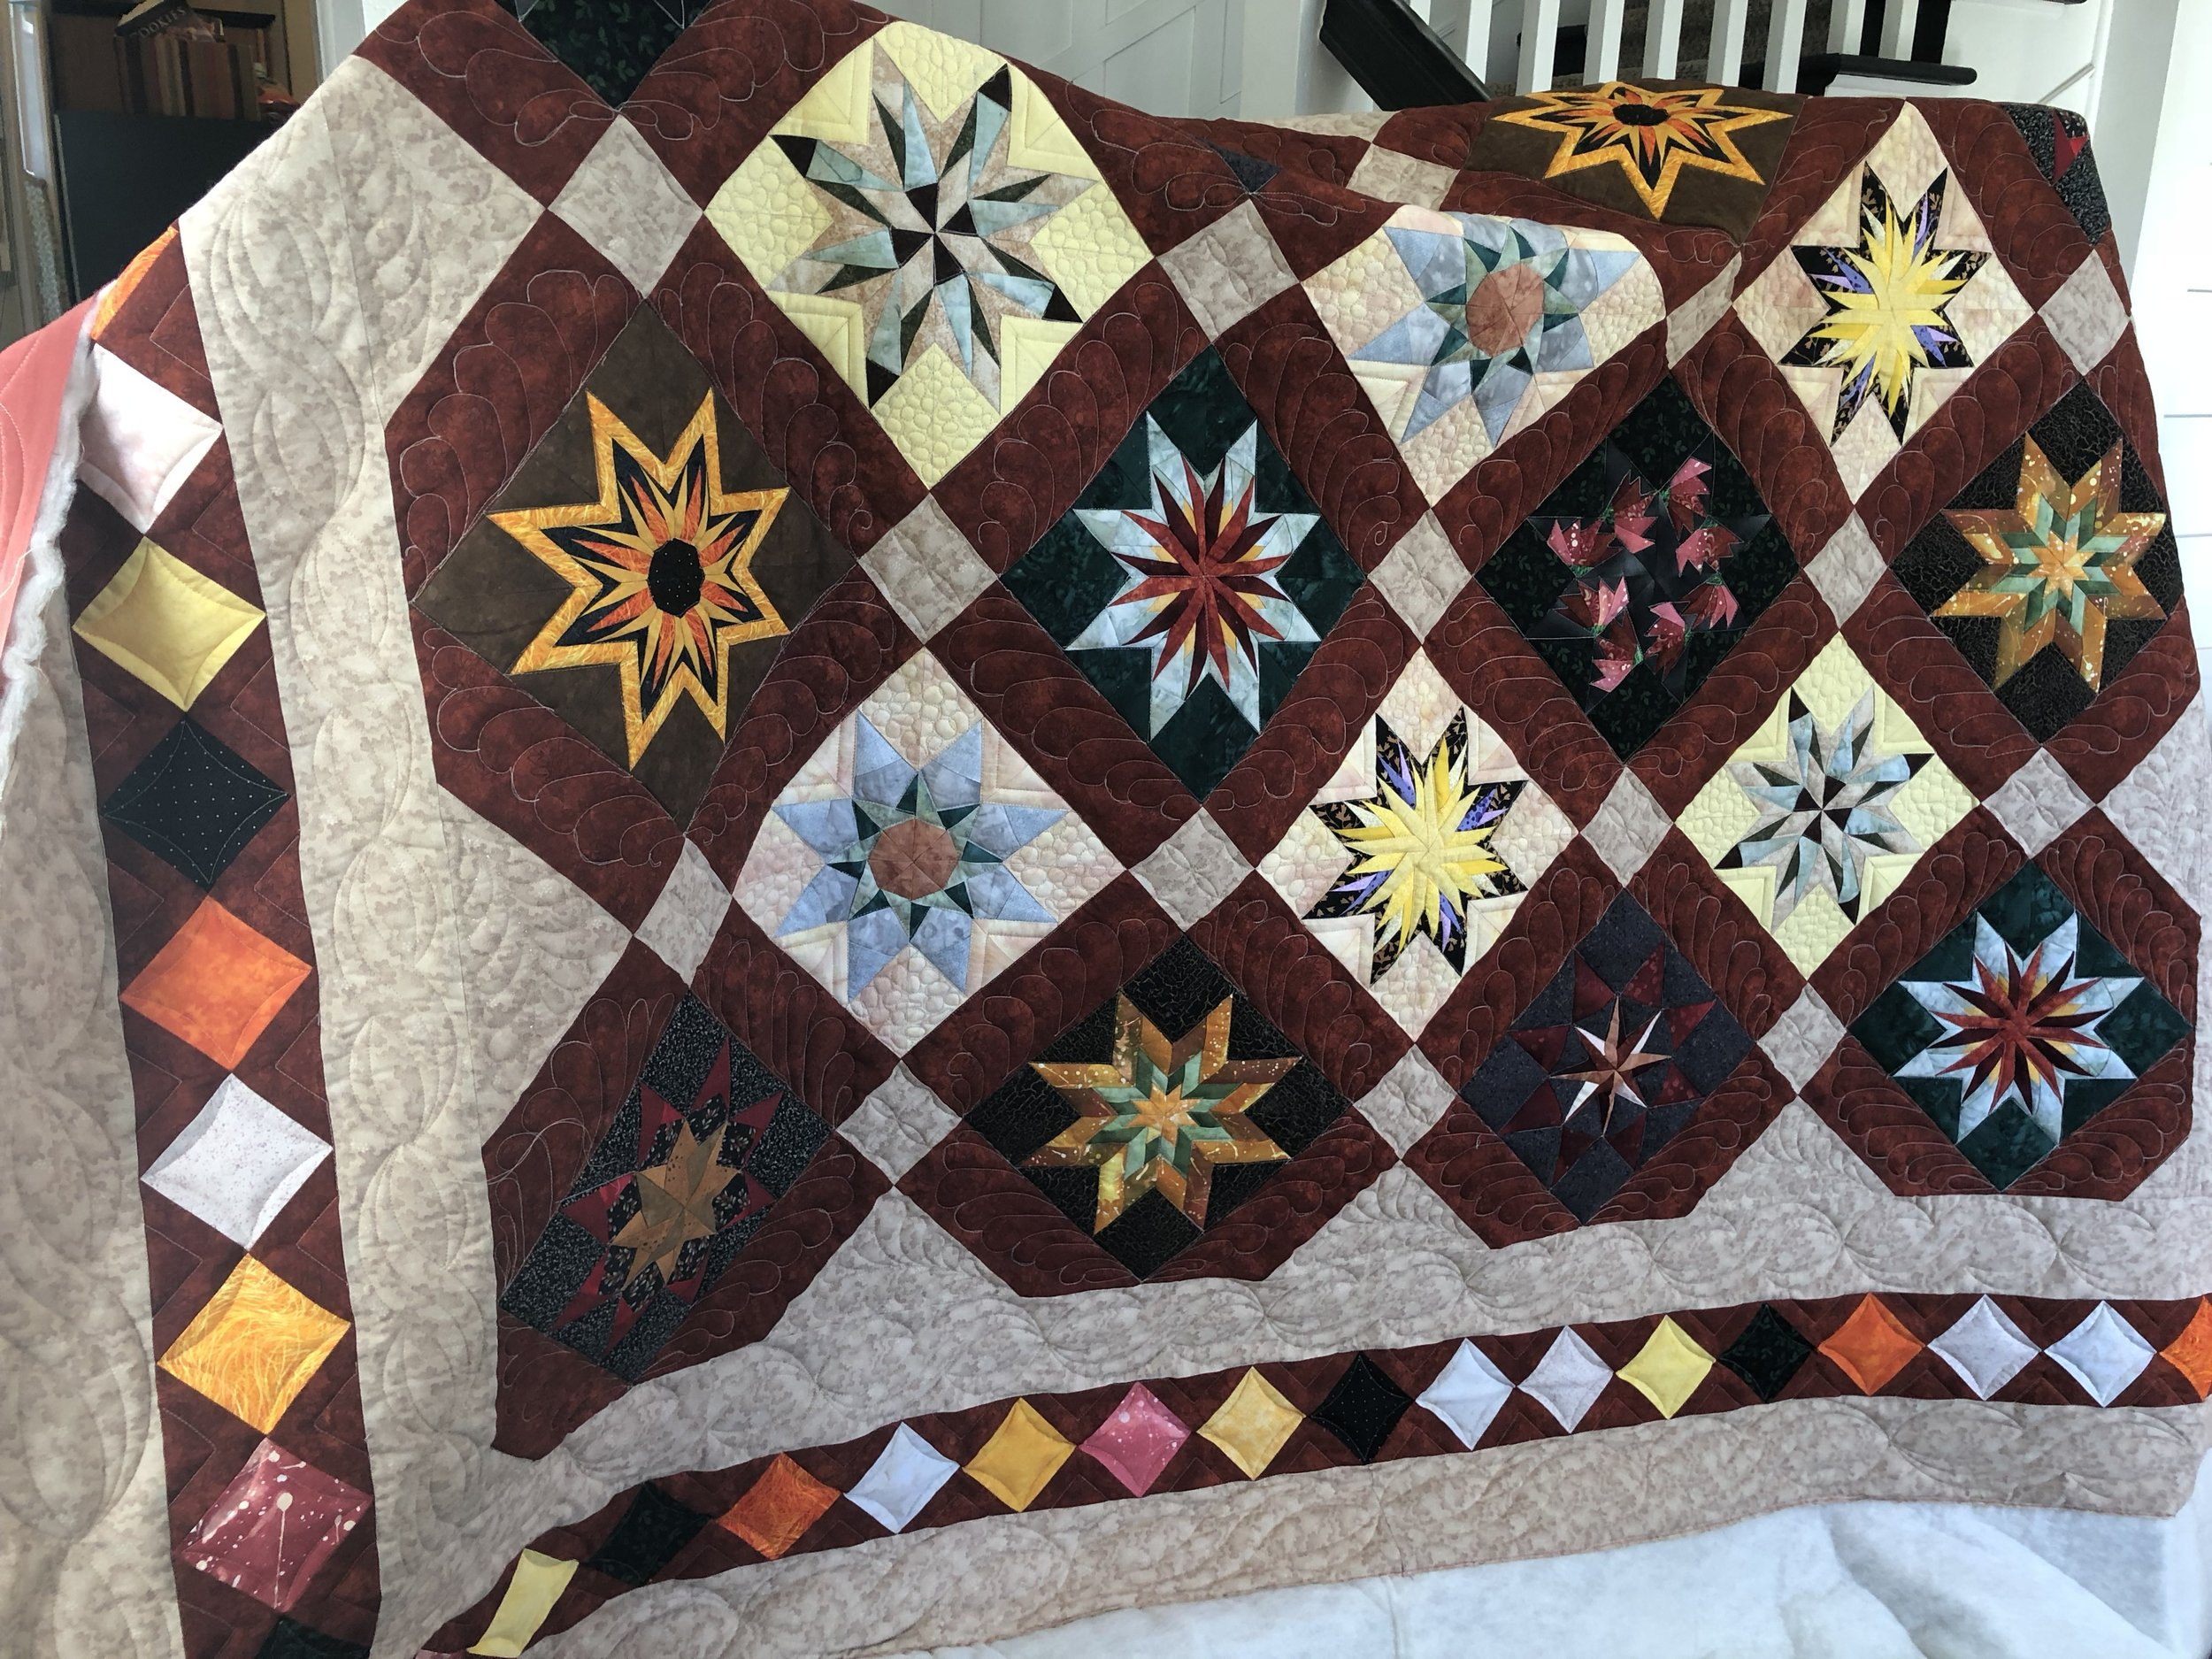 Theora's Quilt: Ruler, FMQ, and Digitized Designs